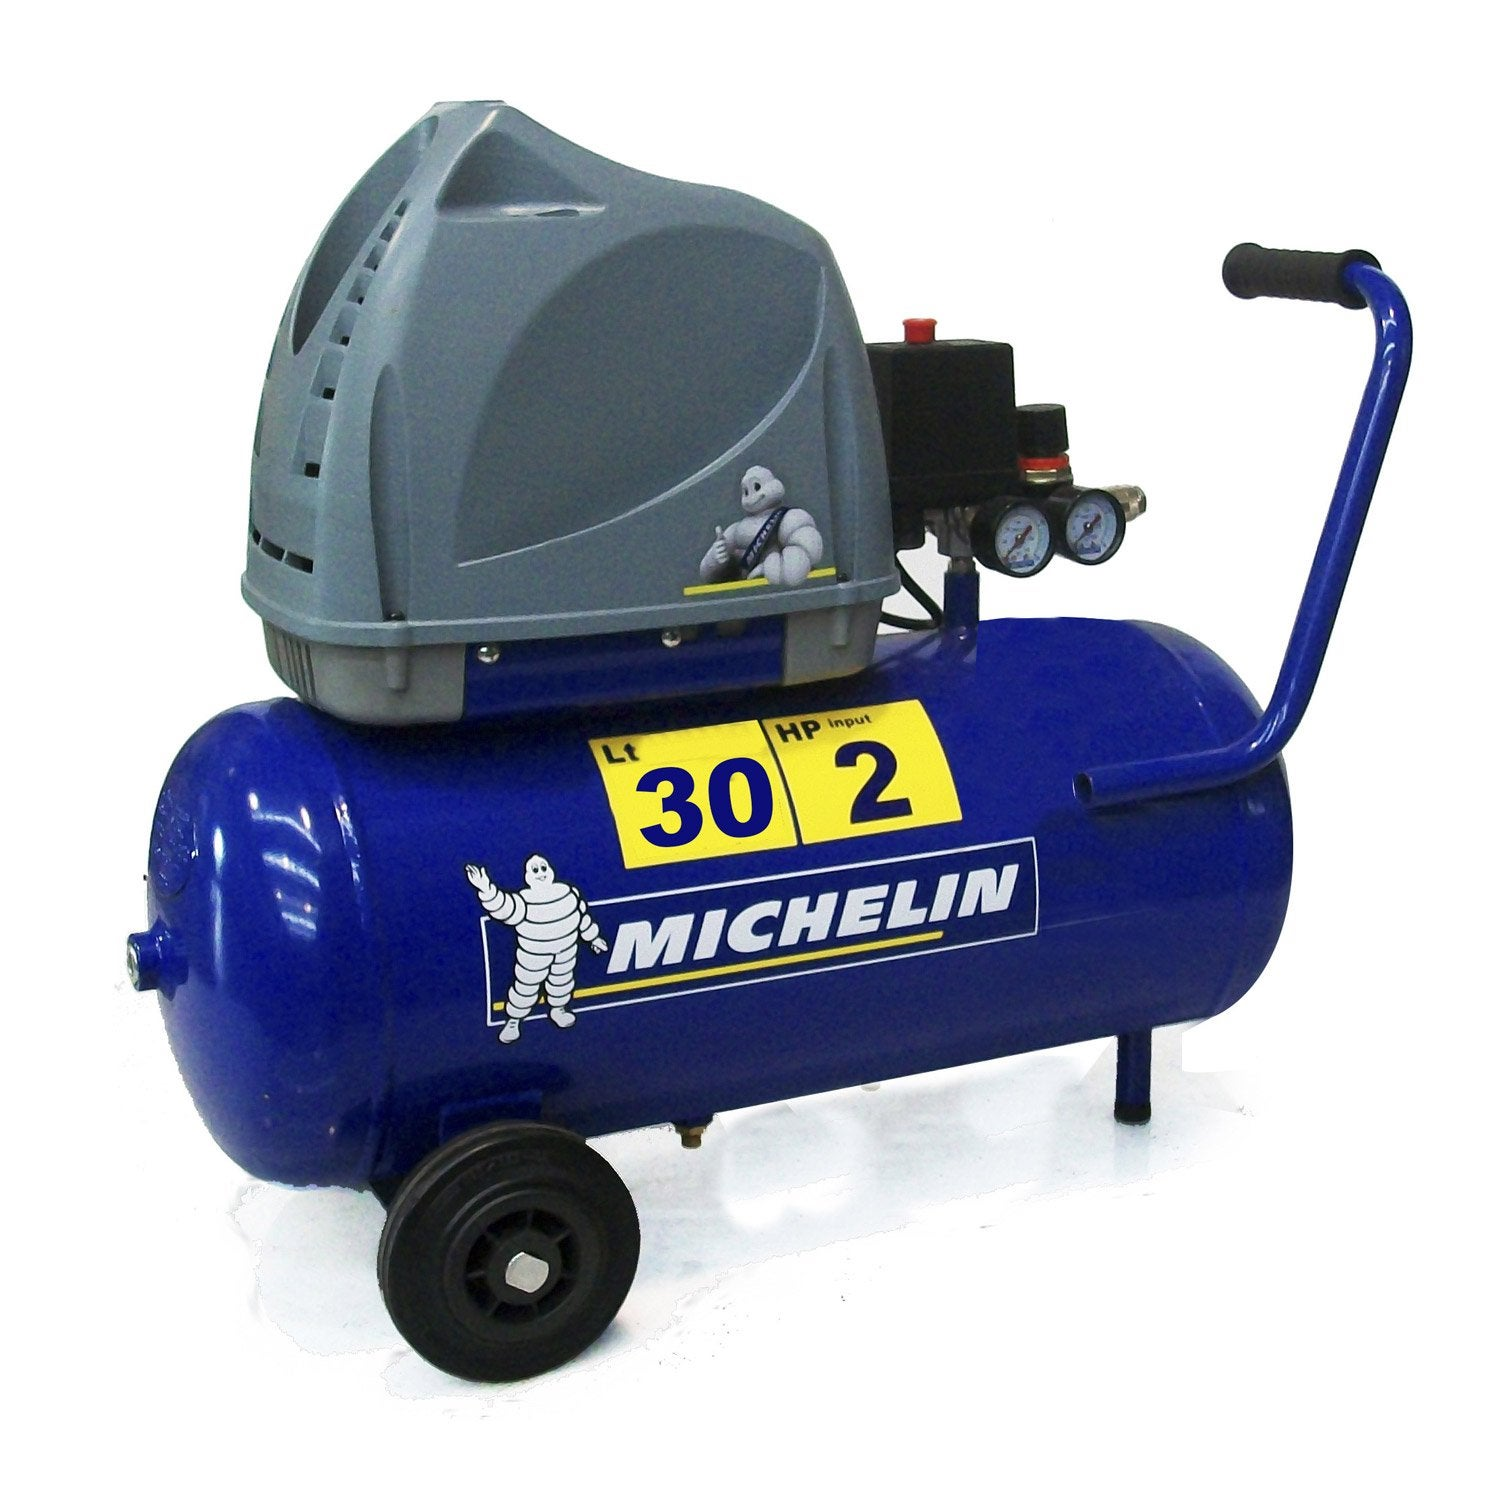 compresseur de chantier michelin 30 l 2 cv leroy merlin. Black Bedroom Furniture Sets. Home Design Ideas